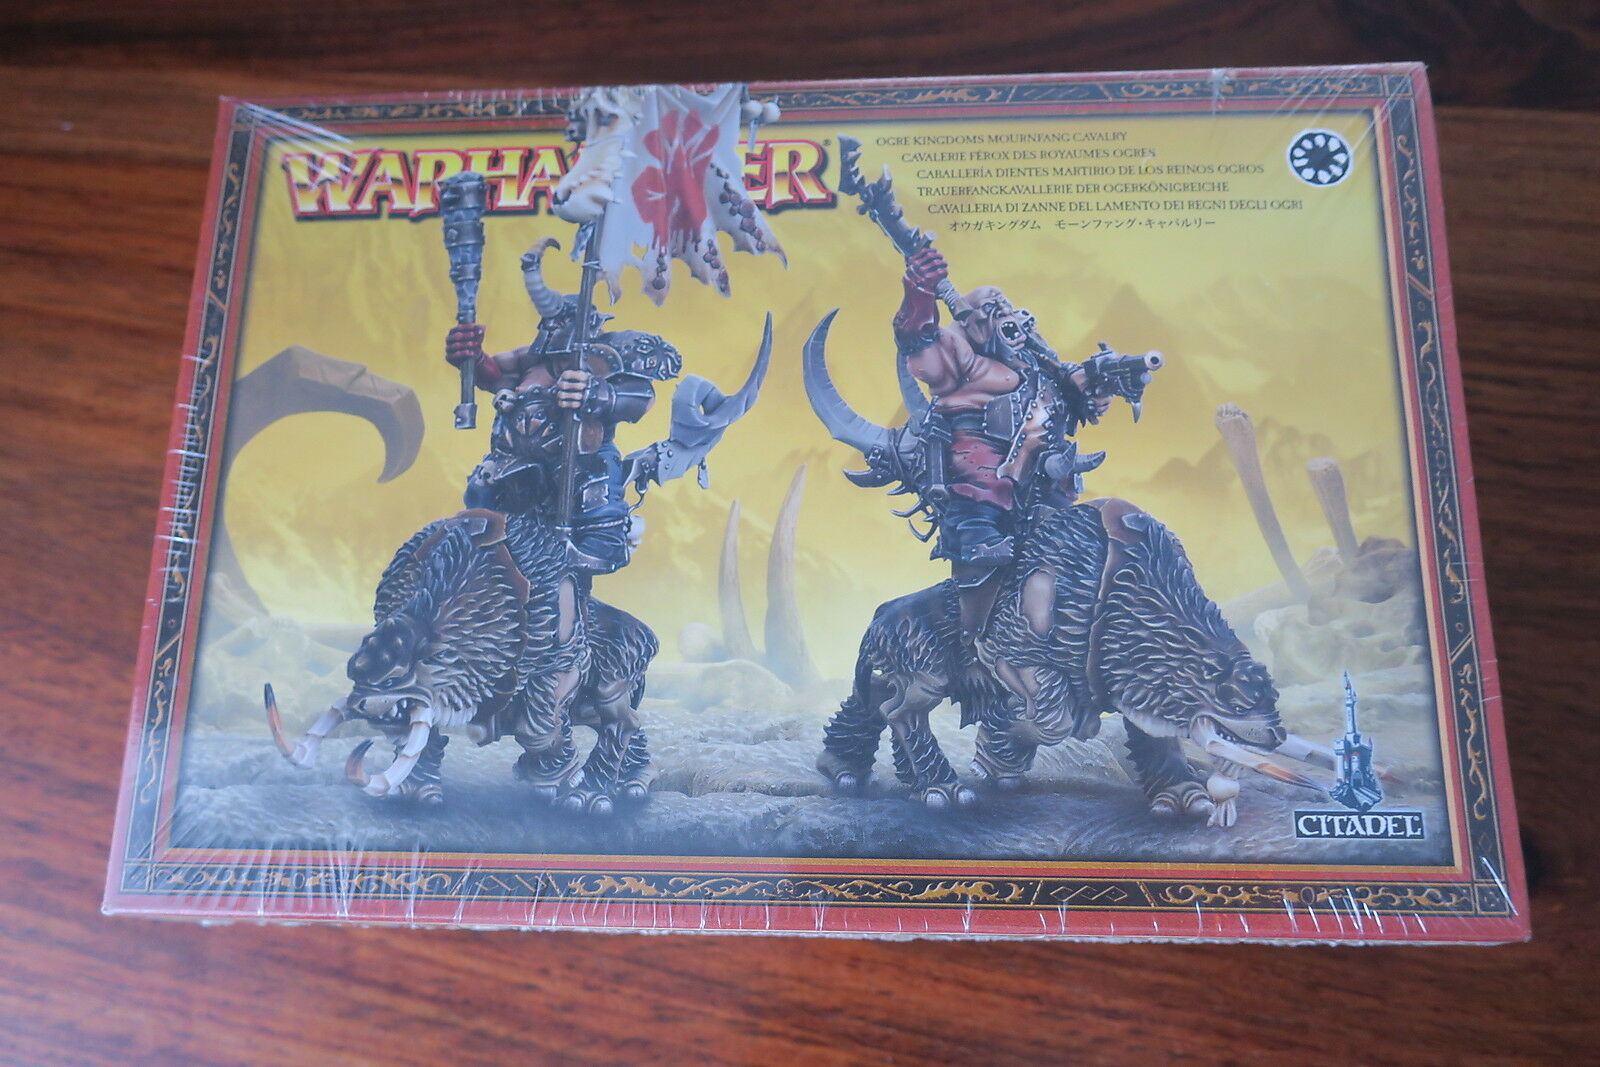 WARHAMMER  CAVALERIE FEROX DES ROYAUMES OGRES   OGRE KINGDOMS MOURNFANG CAVALRY